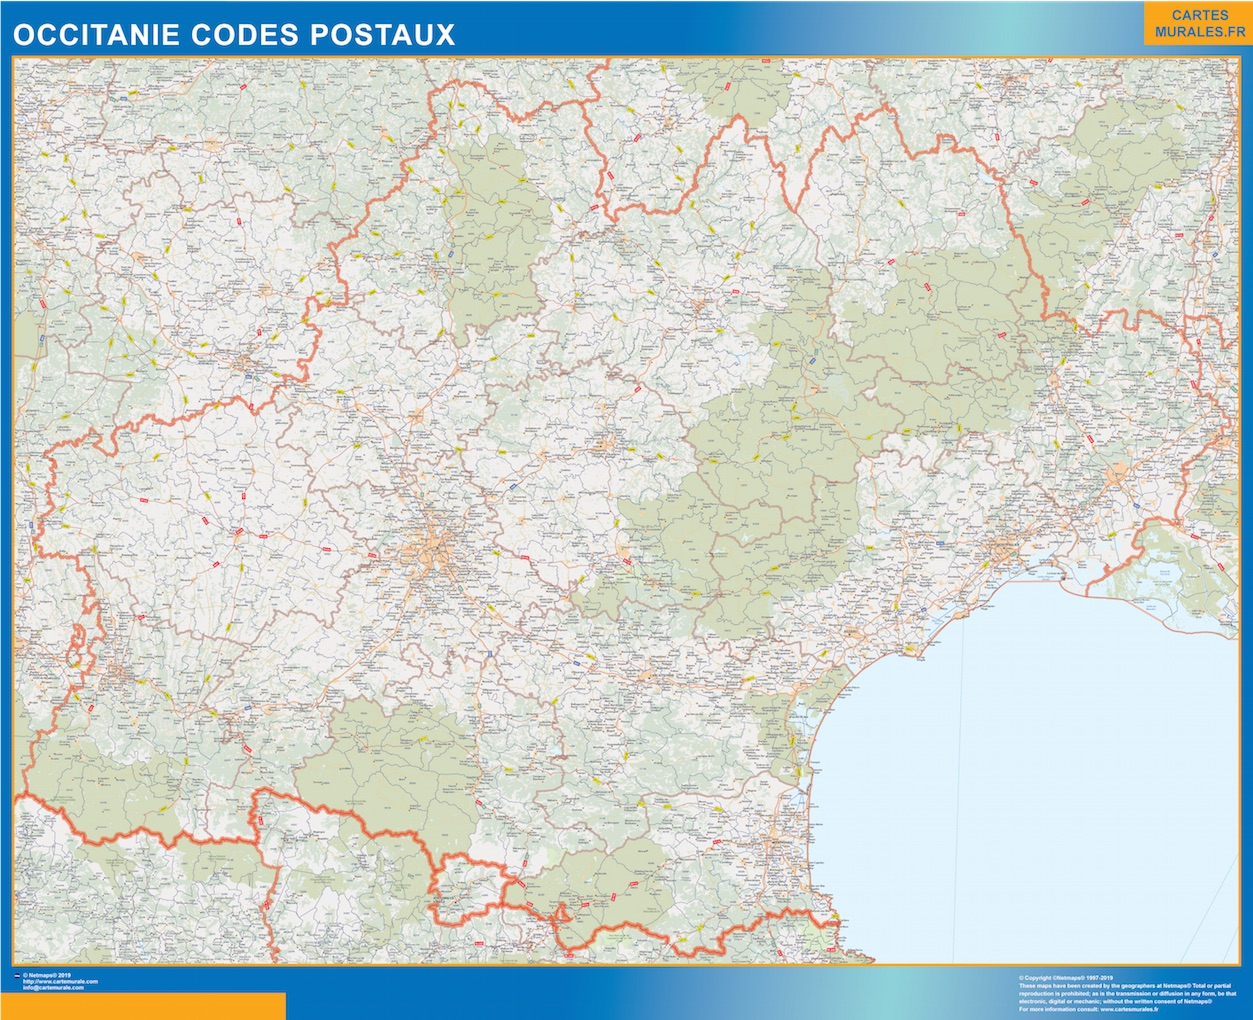 Carte OccitanIe codes postaux